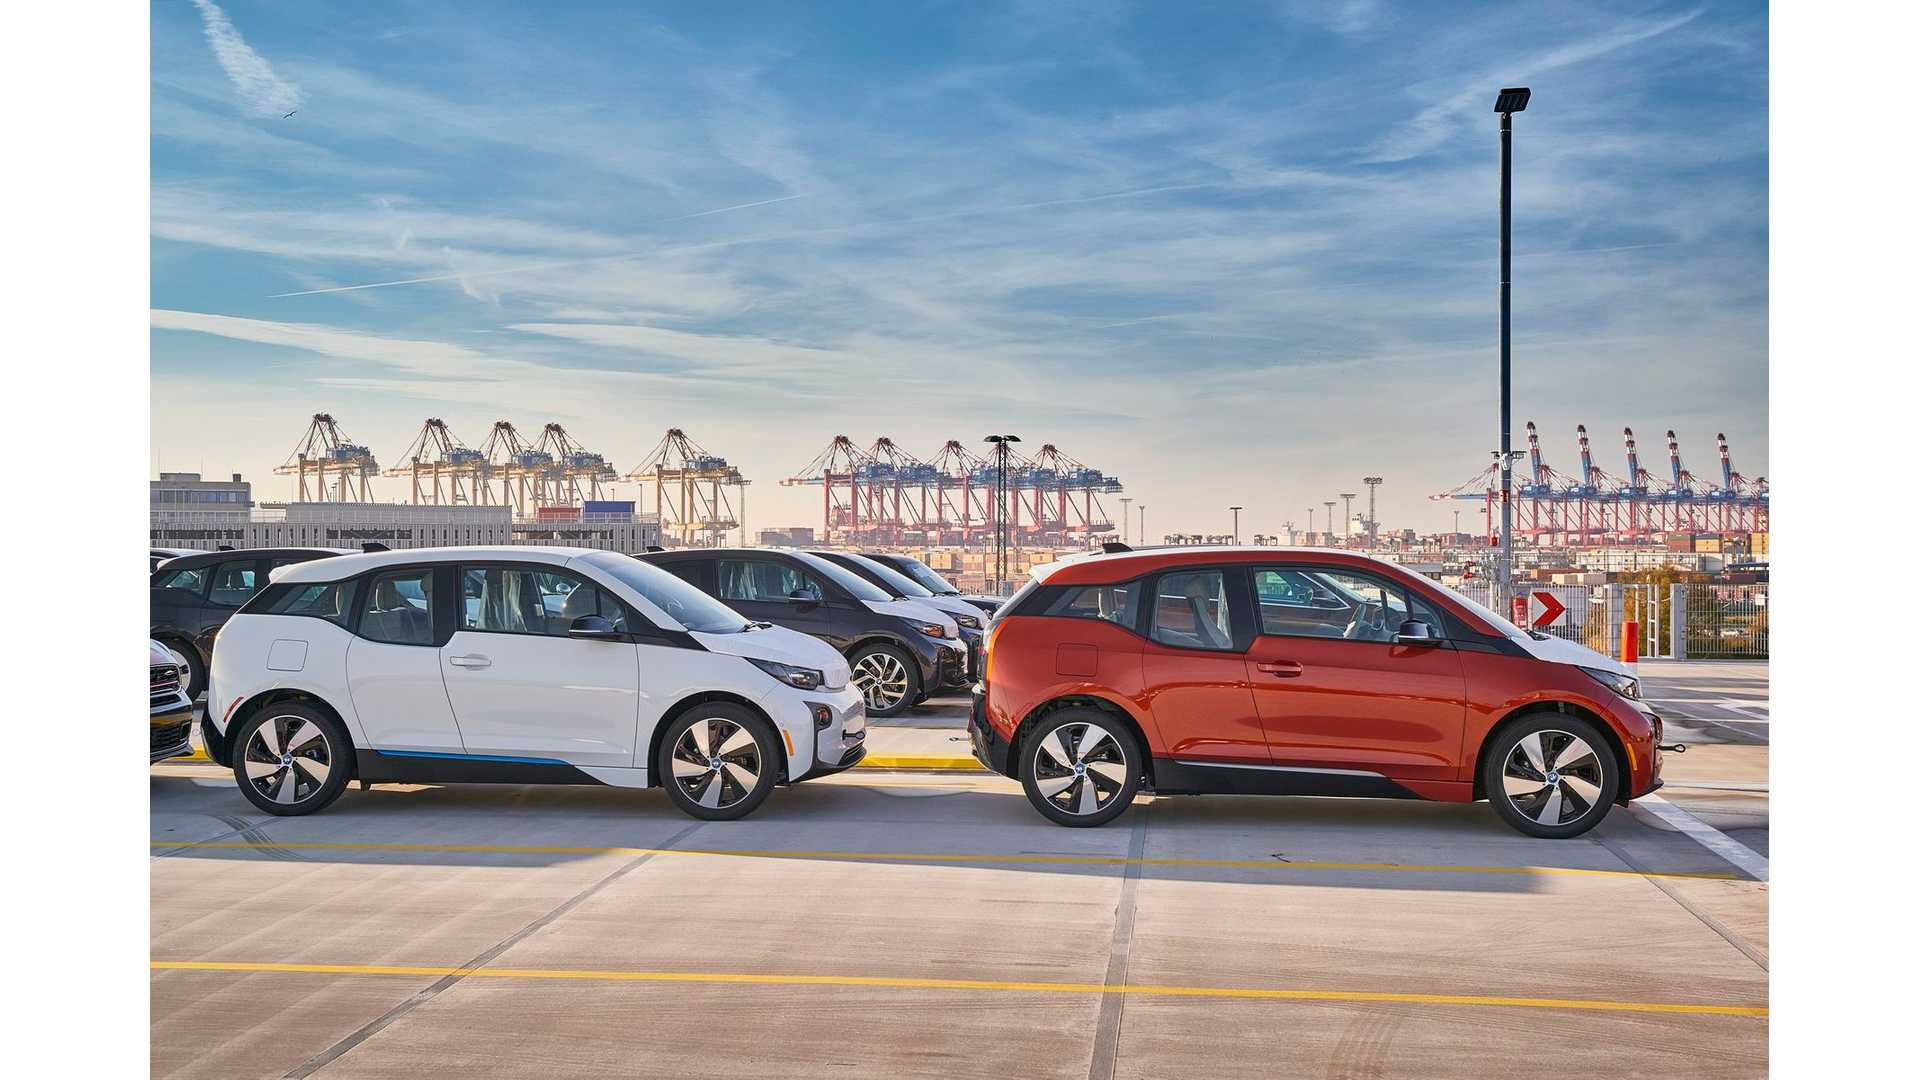 Consumer Reports Used Cars To Avoid 2014 Bmw I3 2012 2013 2015 Tesla Model S 2013 Nissan Leaf